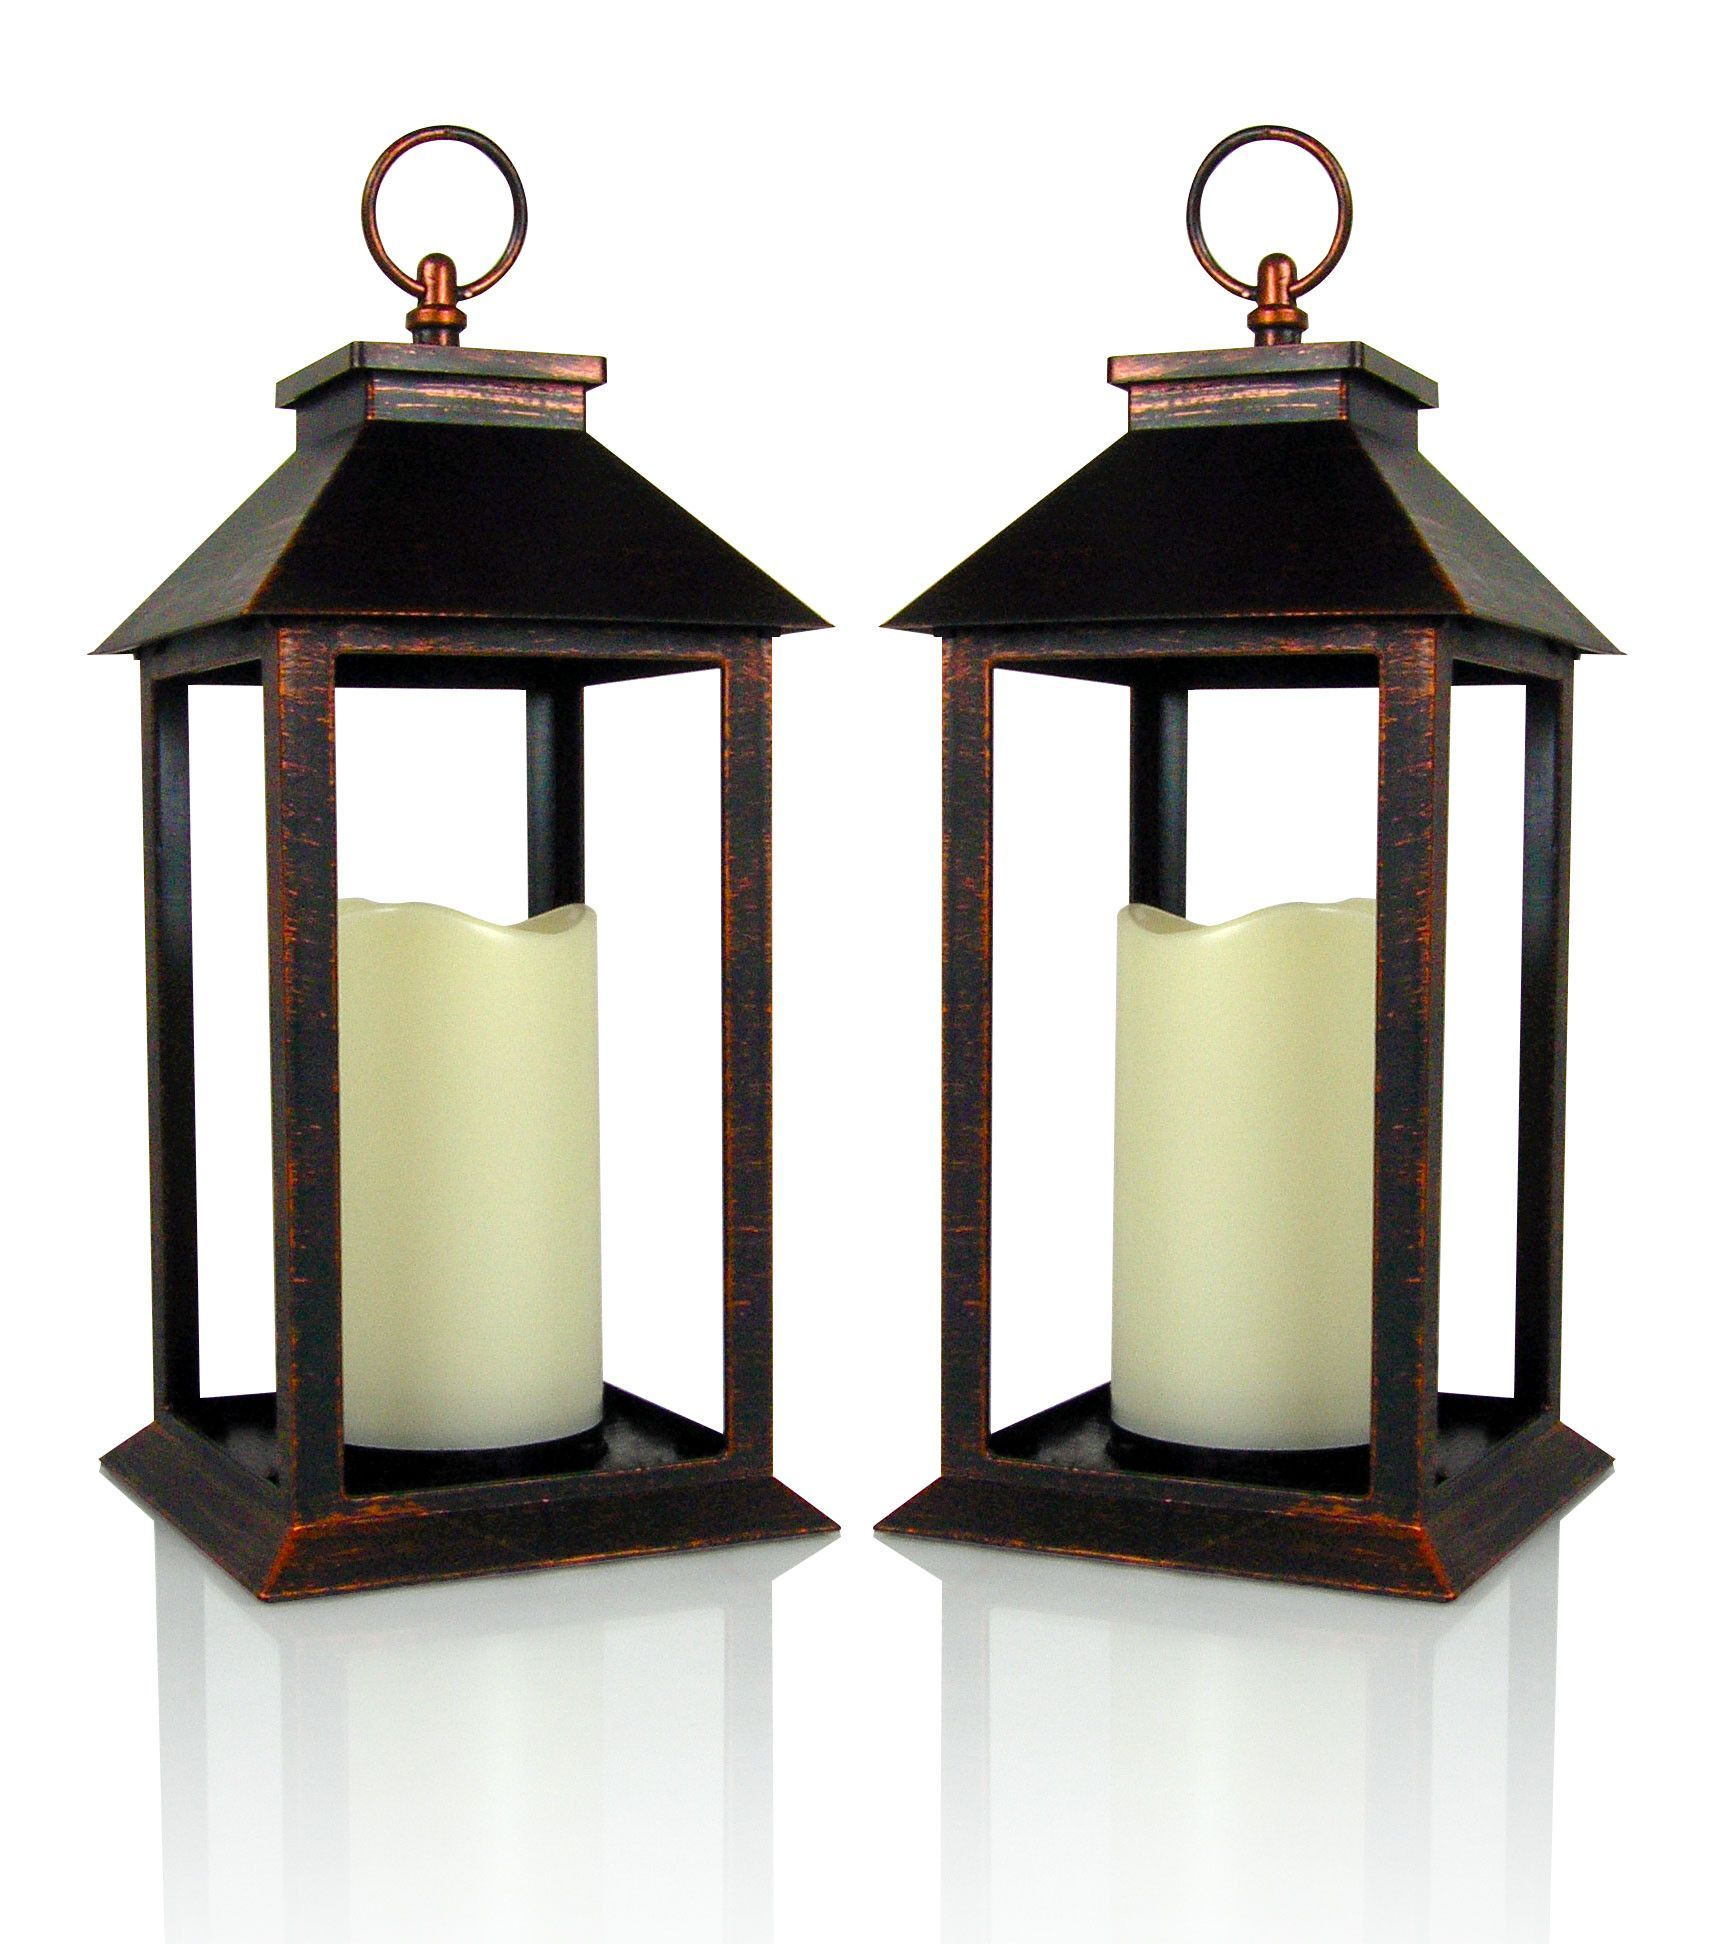 hd background carrying and fairy light decorative decor lantern wallpaper